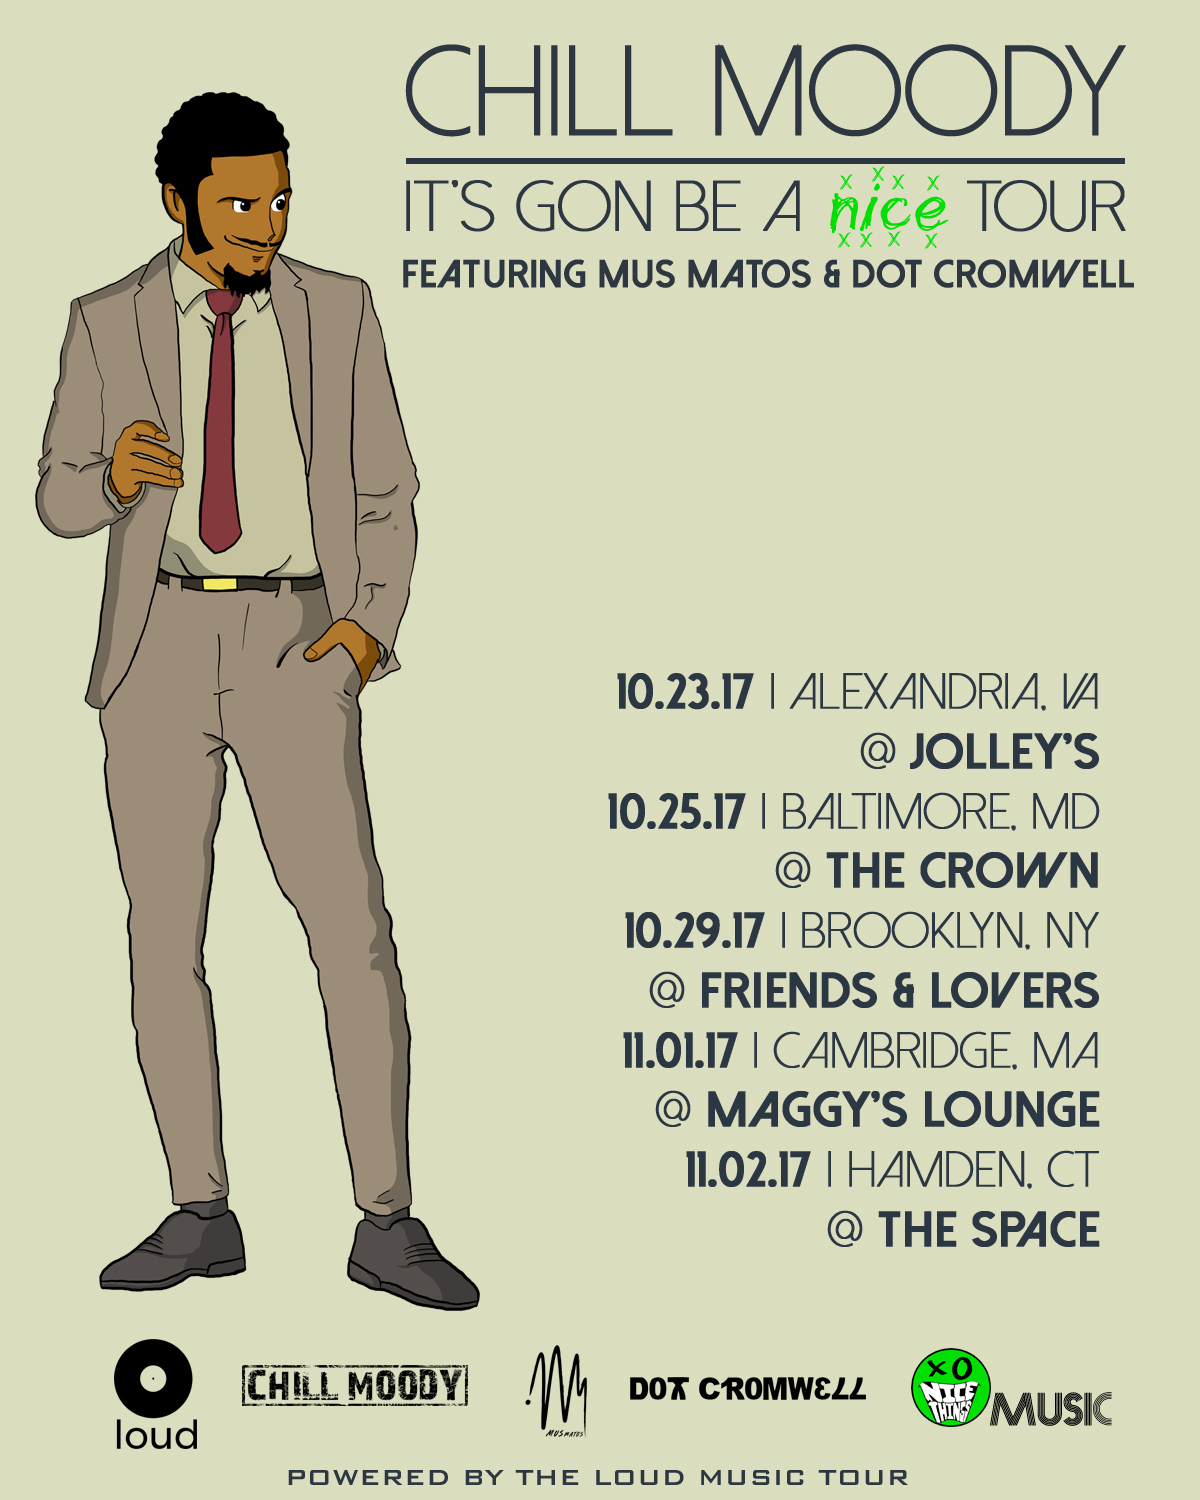 It's Gon Be A nice TOUR - click image to order tickets!